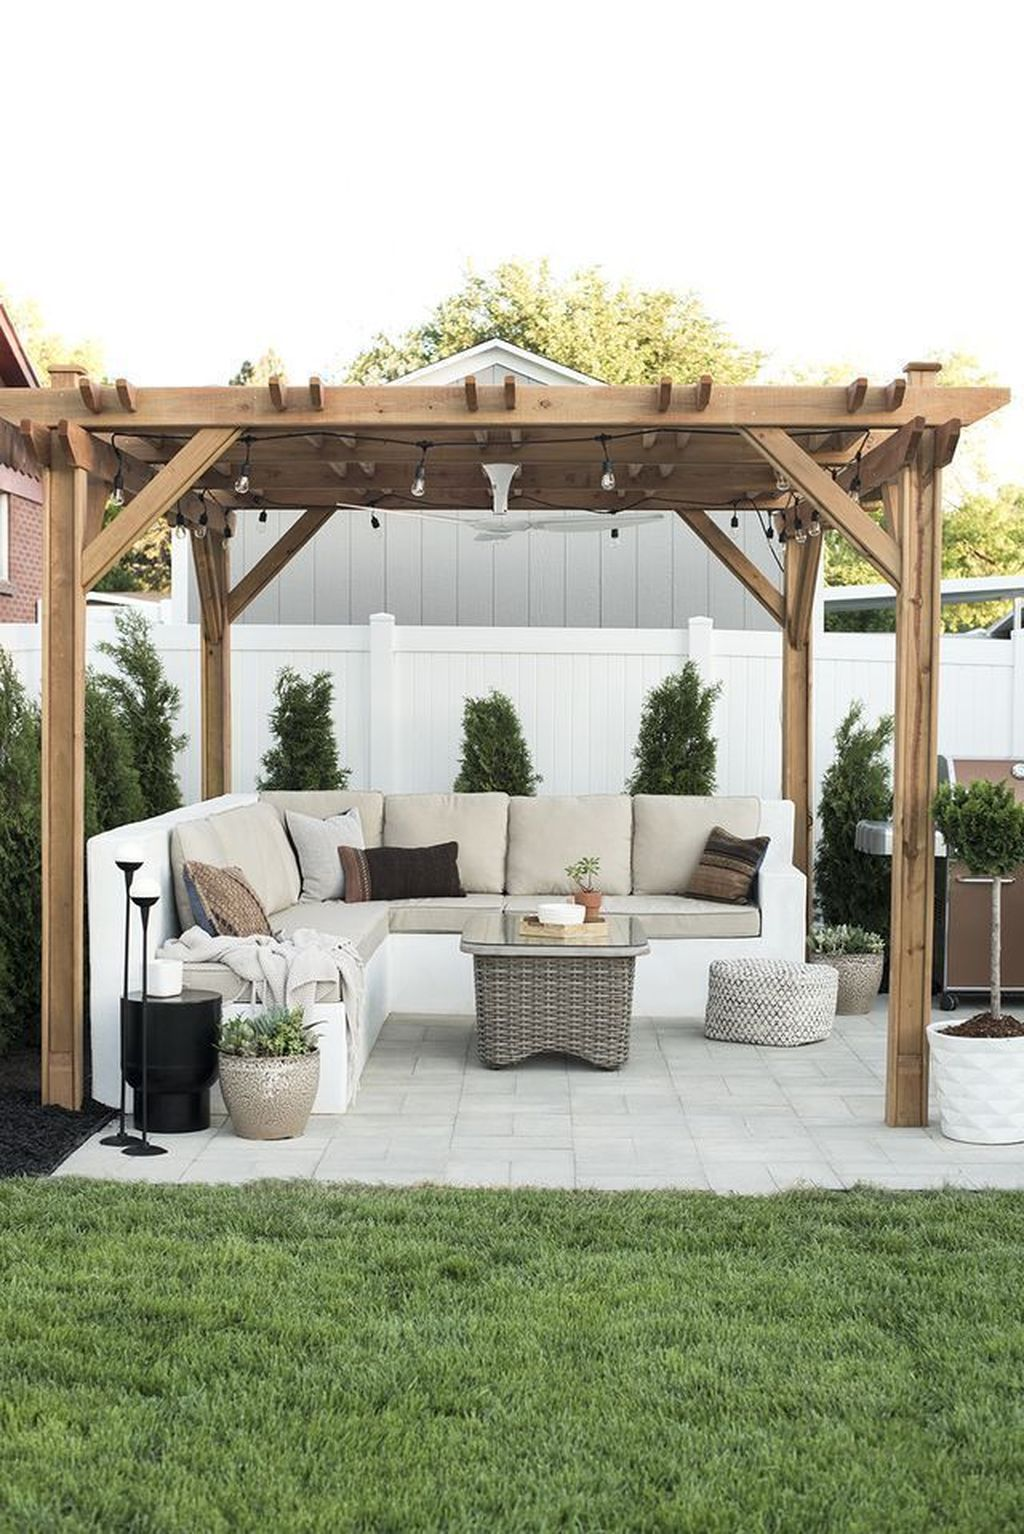 Wonderful Backyard Patio Designs Ideas Perfect For Summertime 24